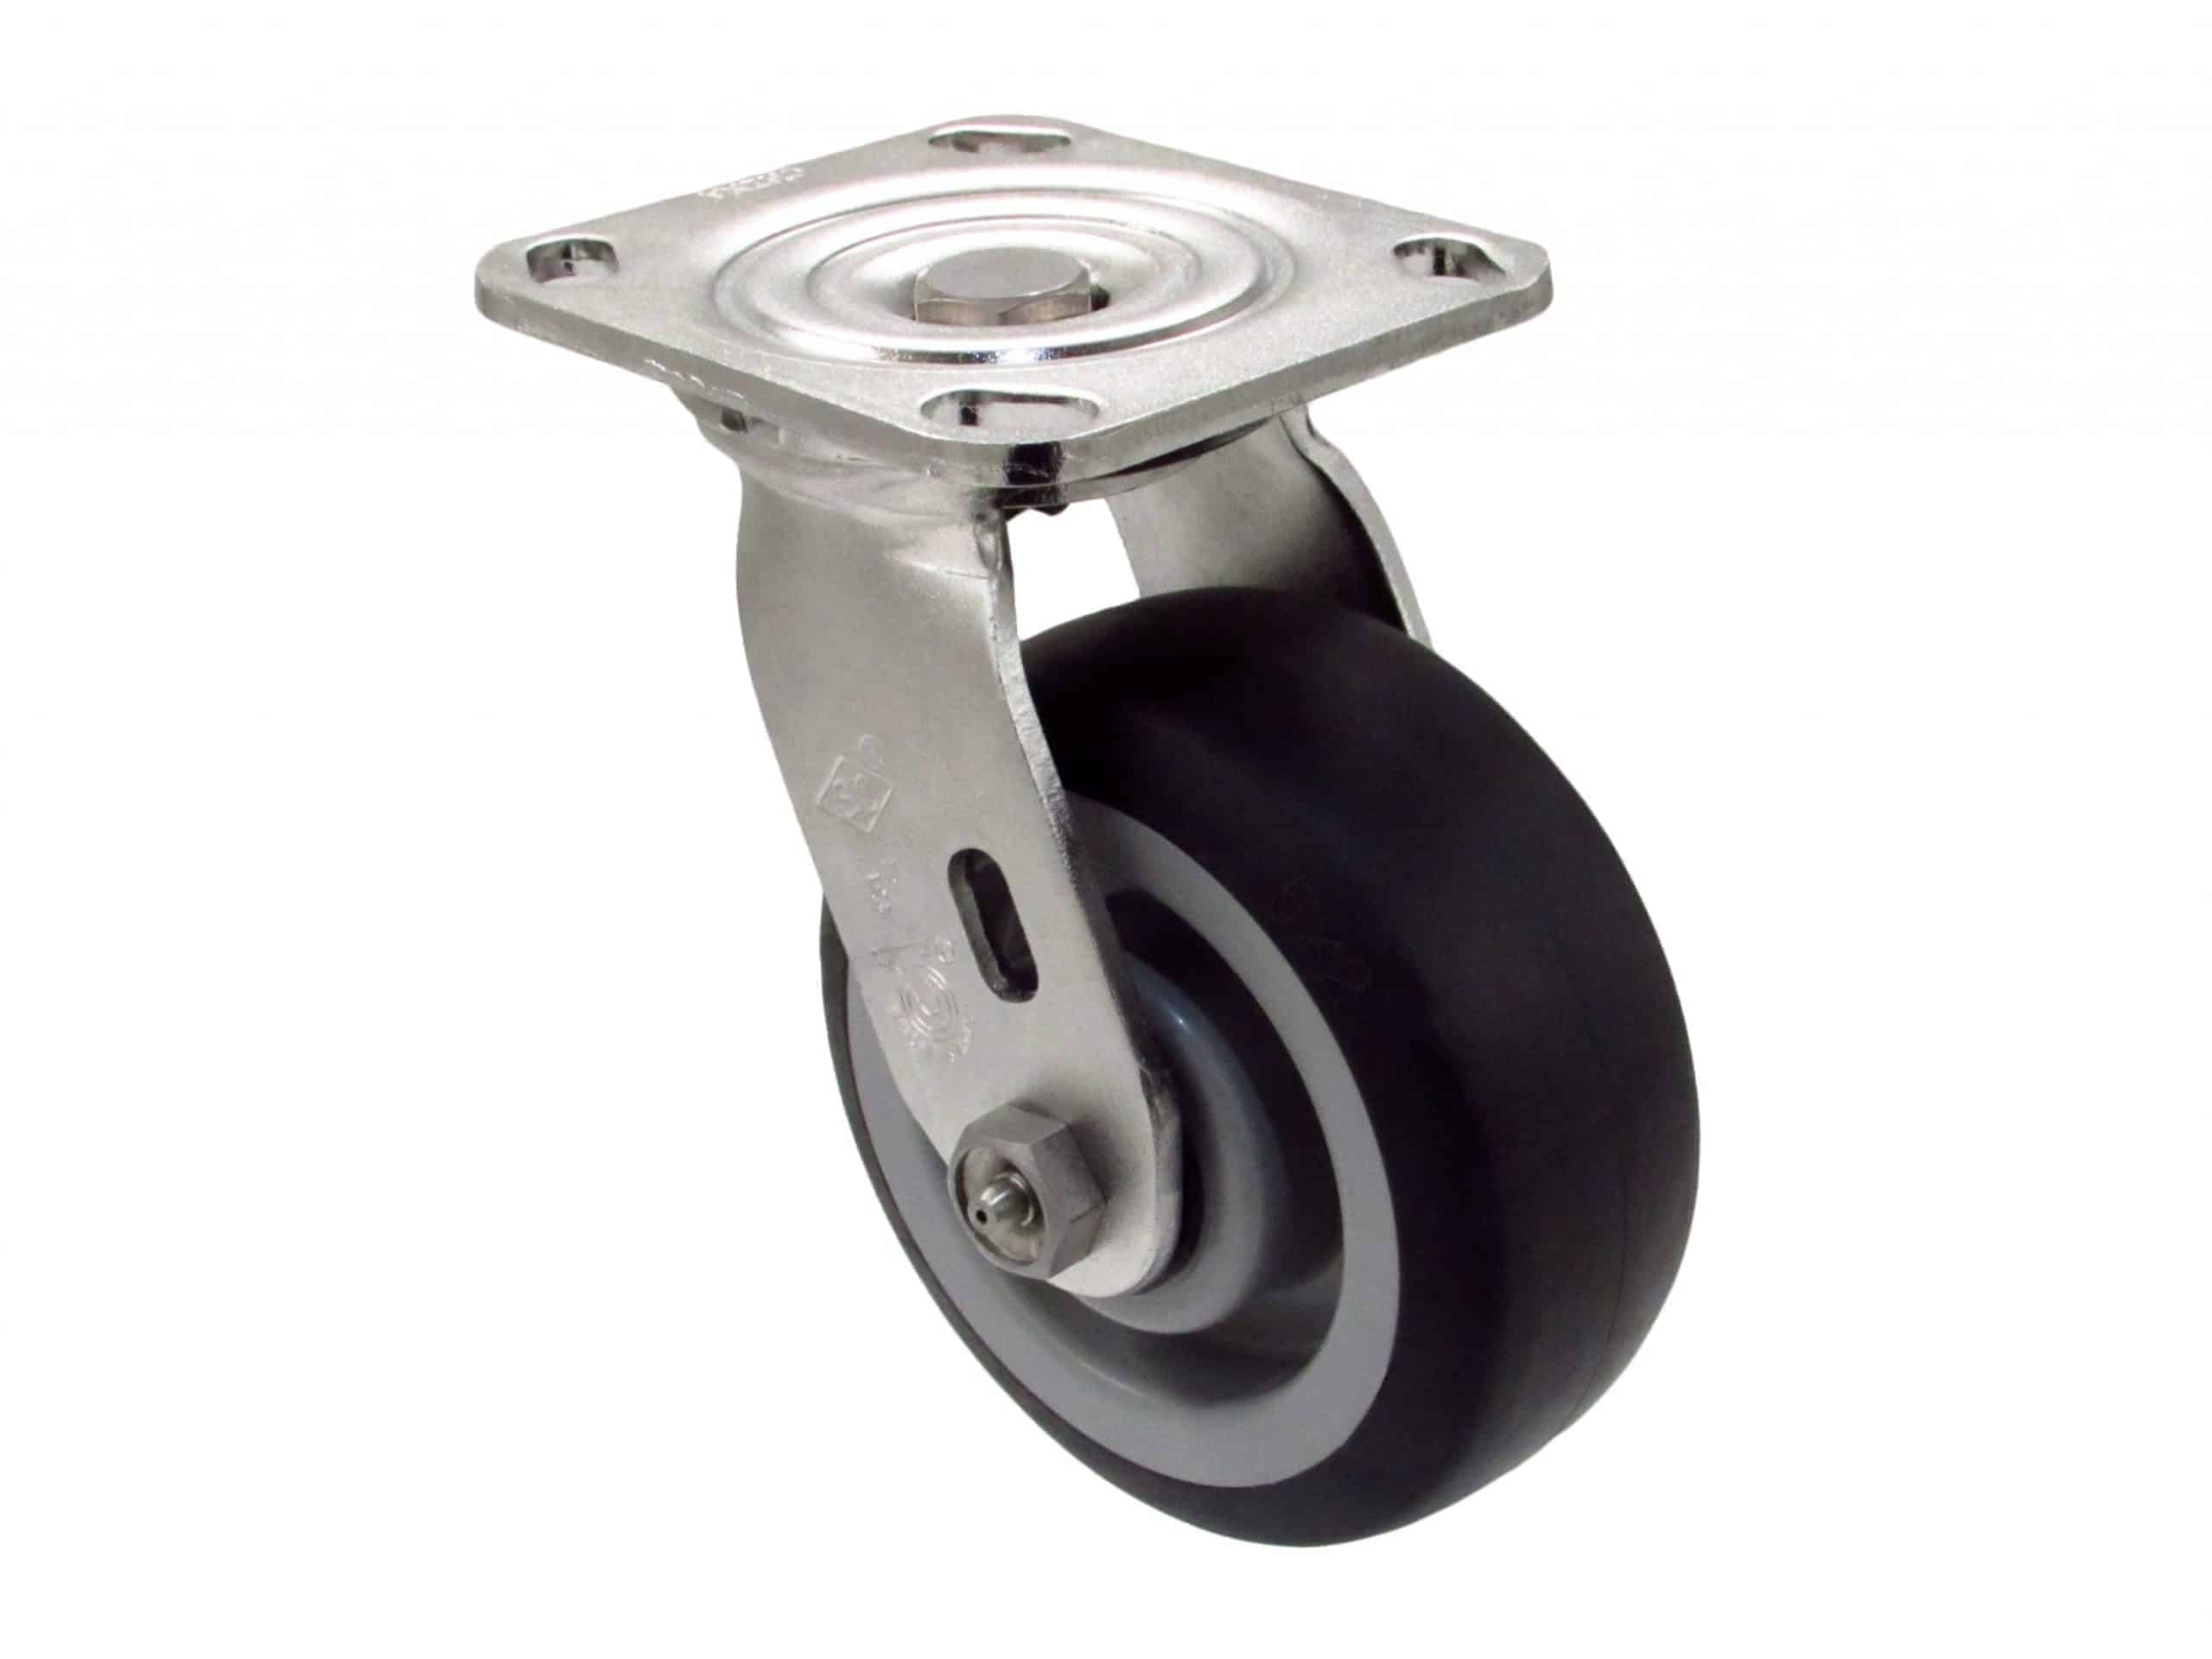 Swivel Themoplastic Rubber 4 x 4-1/2 Top Plate